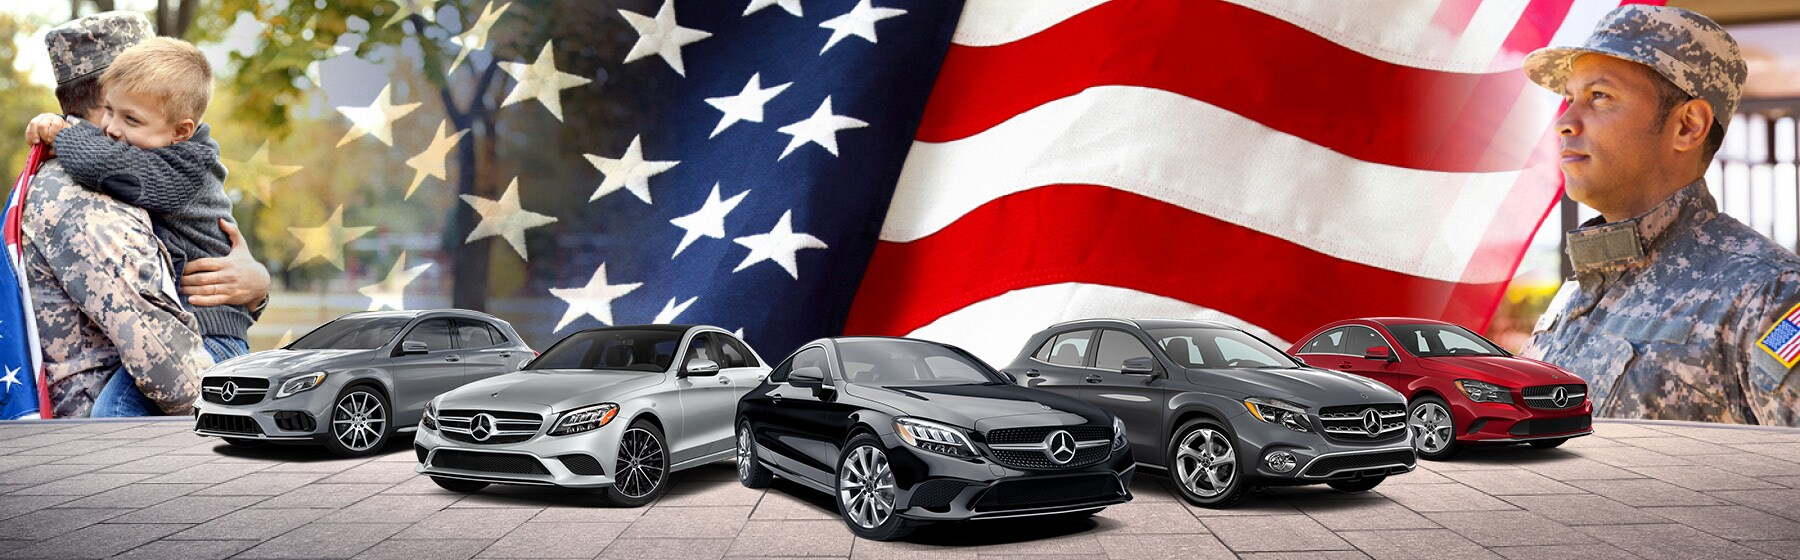 Mercedes-Benz Arlington Military Benefits | Park Place ...